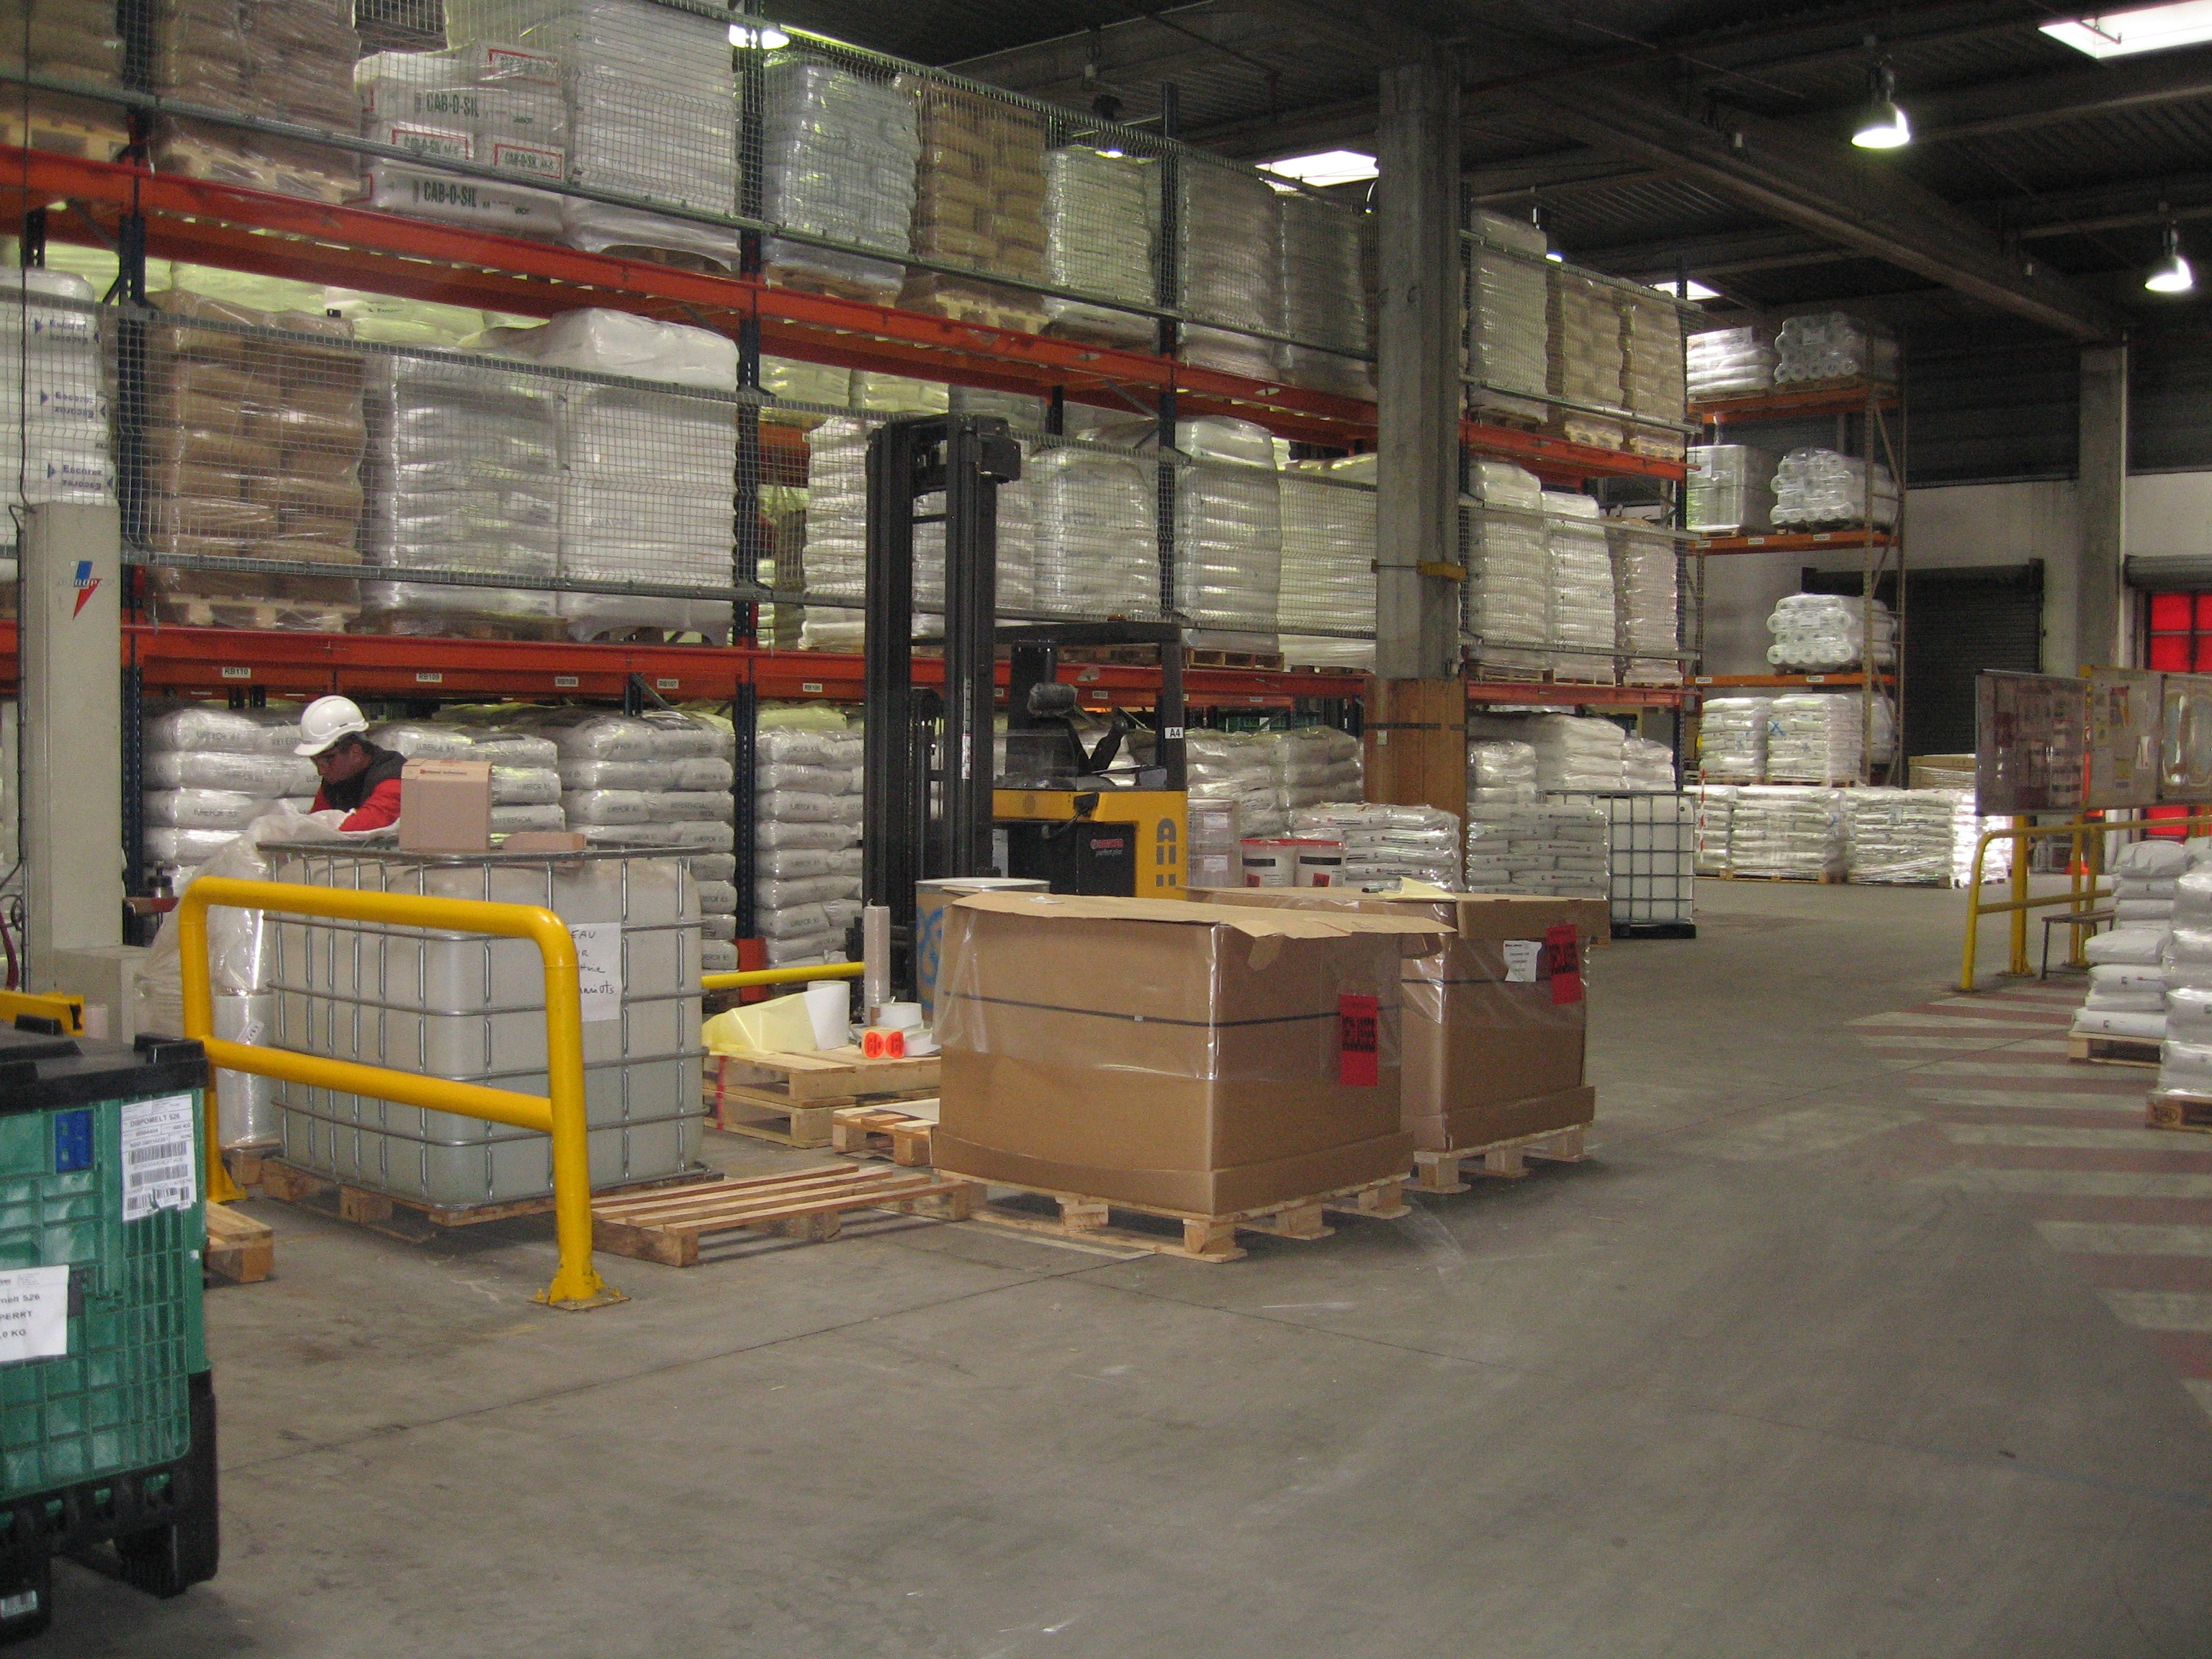 How Are Warehouses Using Smart Glasses